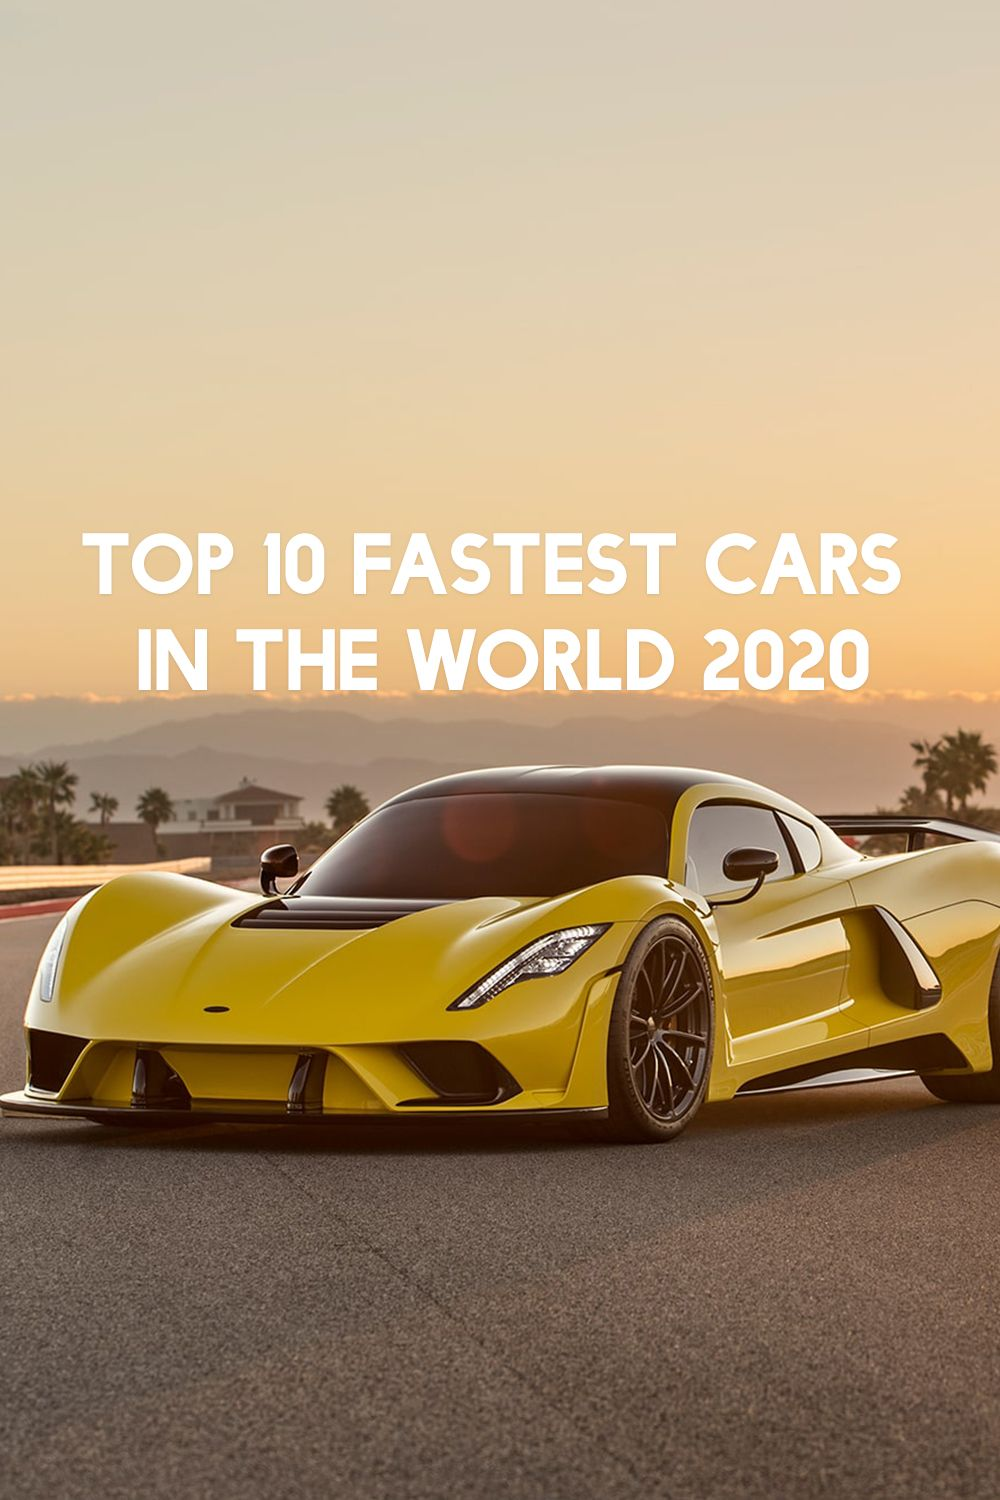 Top 10 Fastest Cars In The World 2020 Top 10 Fastest Cars Car In The World Fast Cars